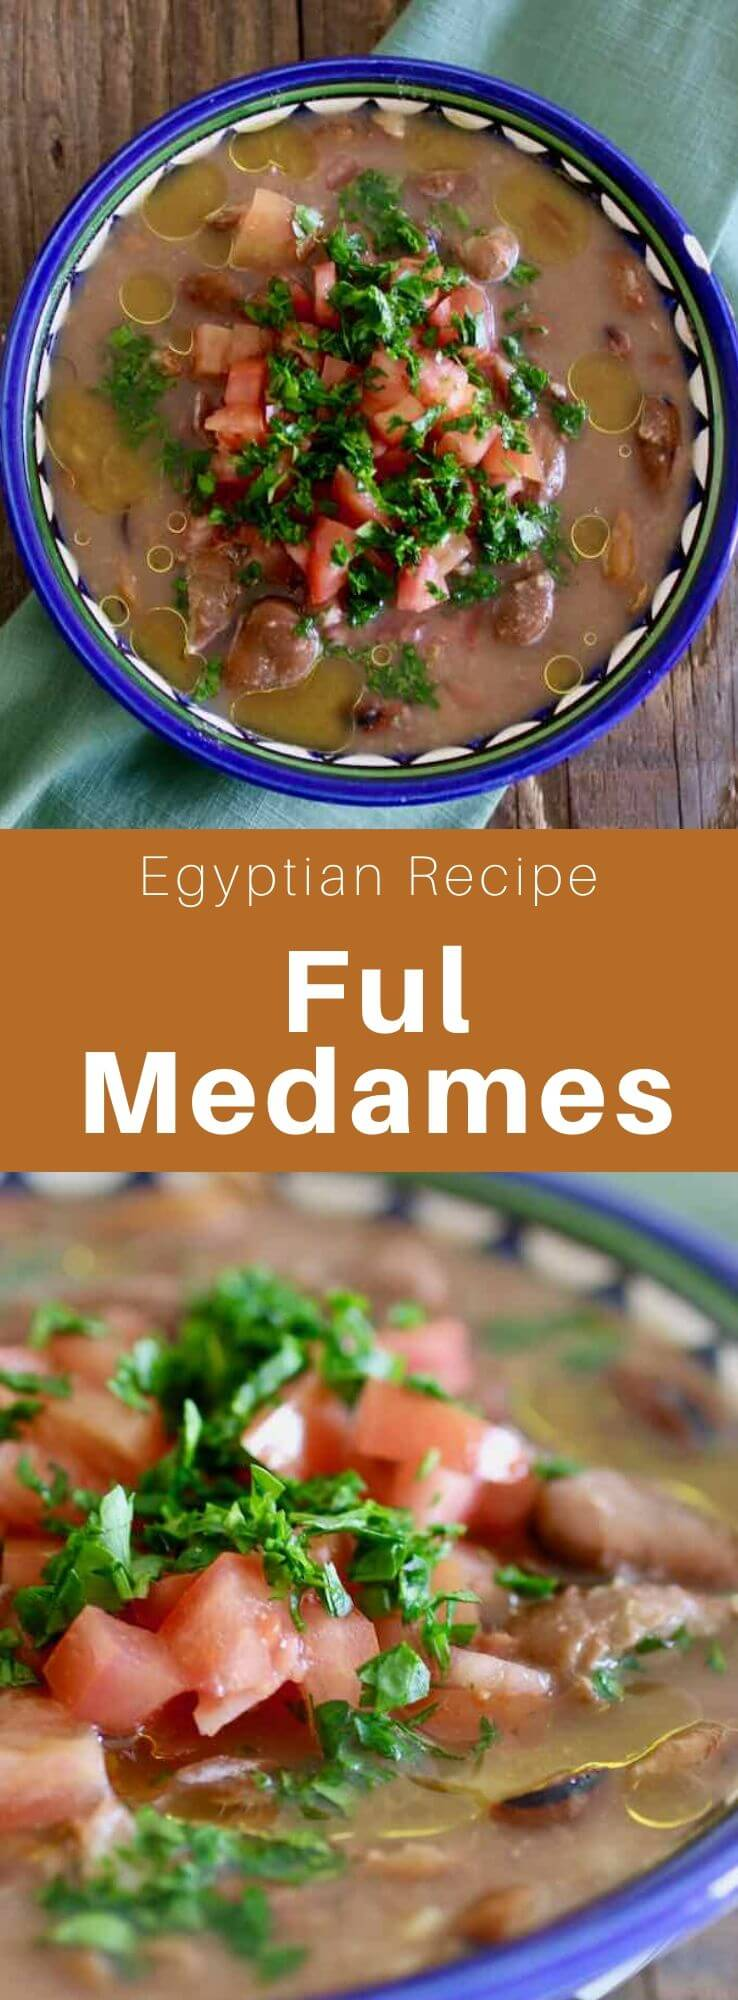 Ful medames are a vegan breakfast from Egypt and the Middle East made with fava beans, lemon juice, garlic, olive oil and cumin. #Egypt #EgyptianCuisine #EgyptianFood #EgyptianRecipe #WorldCuisine #196flavors